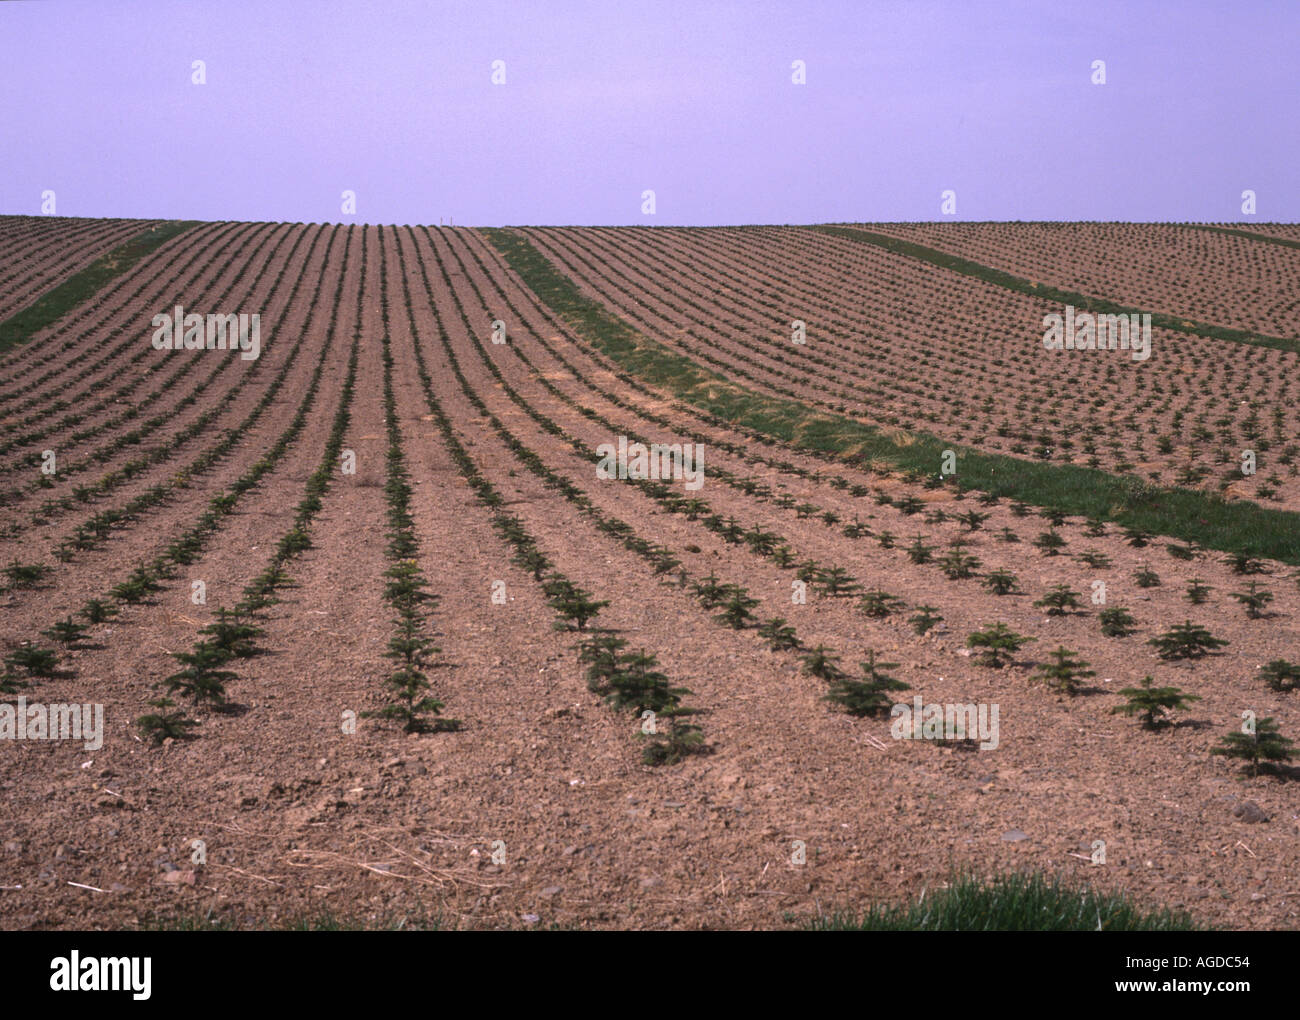 dh Tree plantation FORESTRY UK Scotland Fir trees young saplings conifer sapling planted rows forest planting - Stock Image